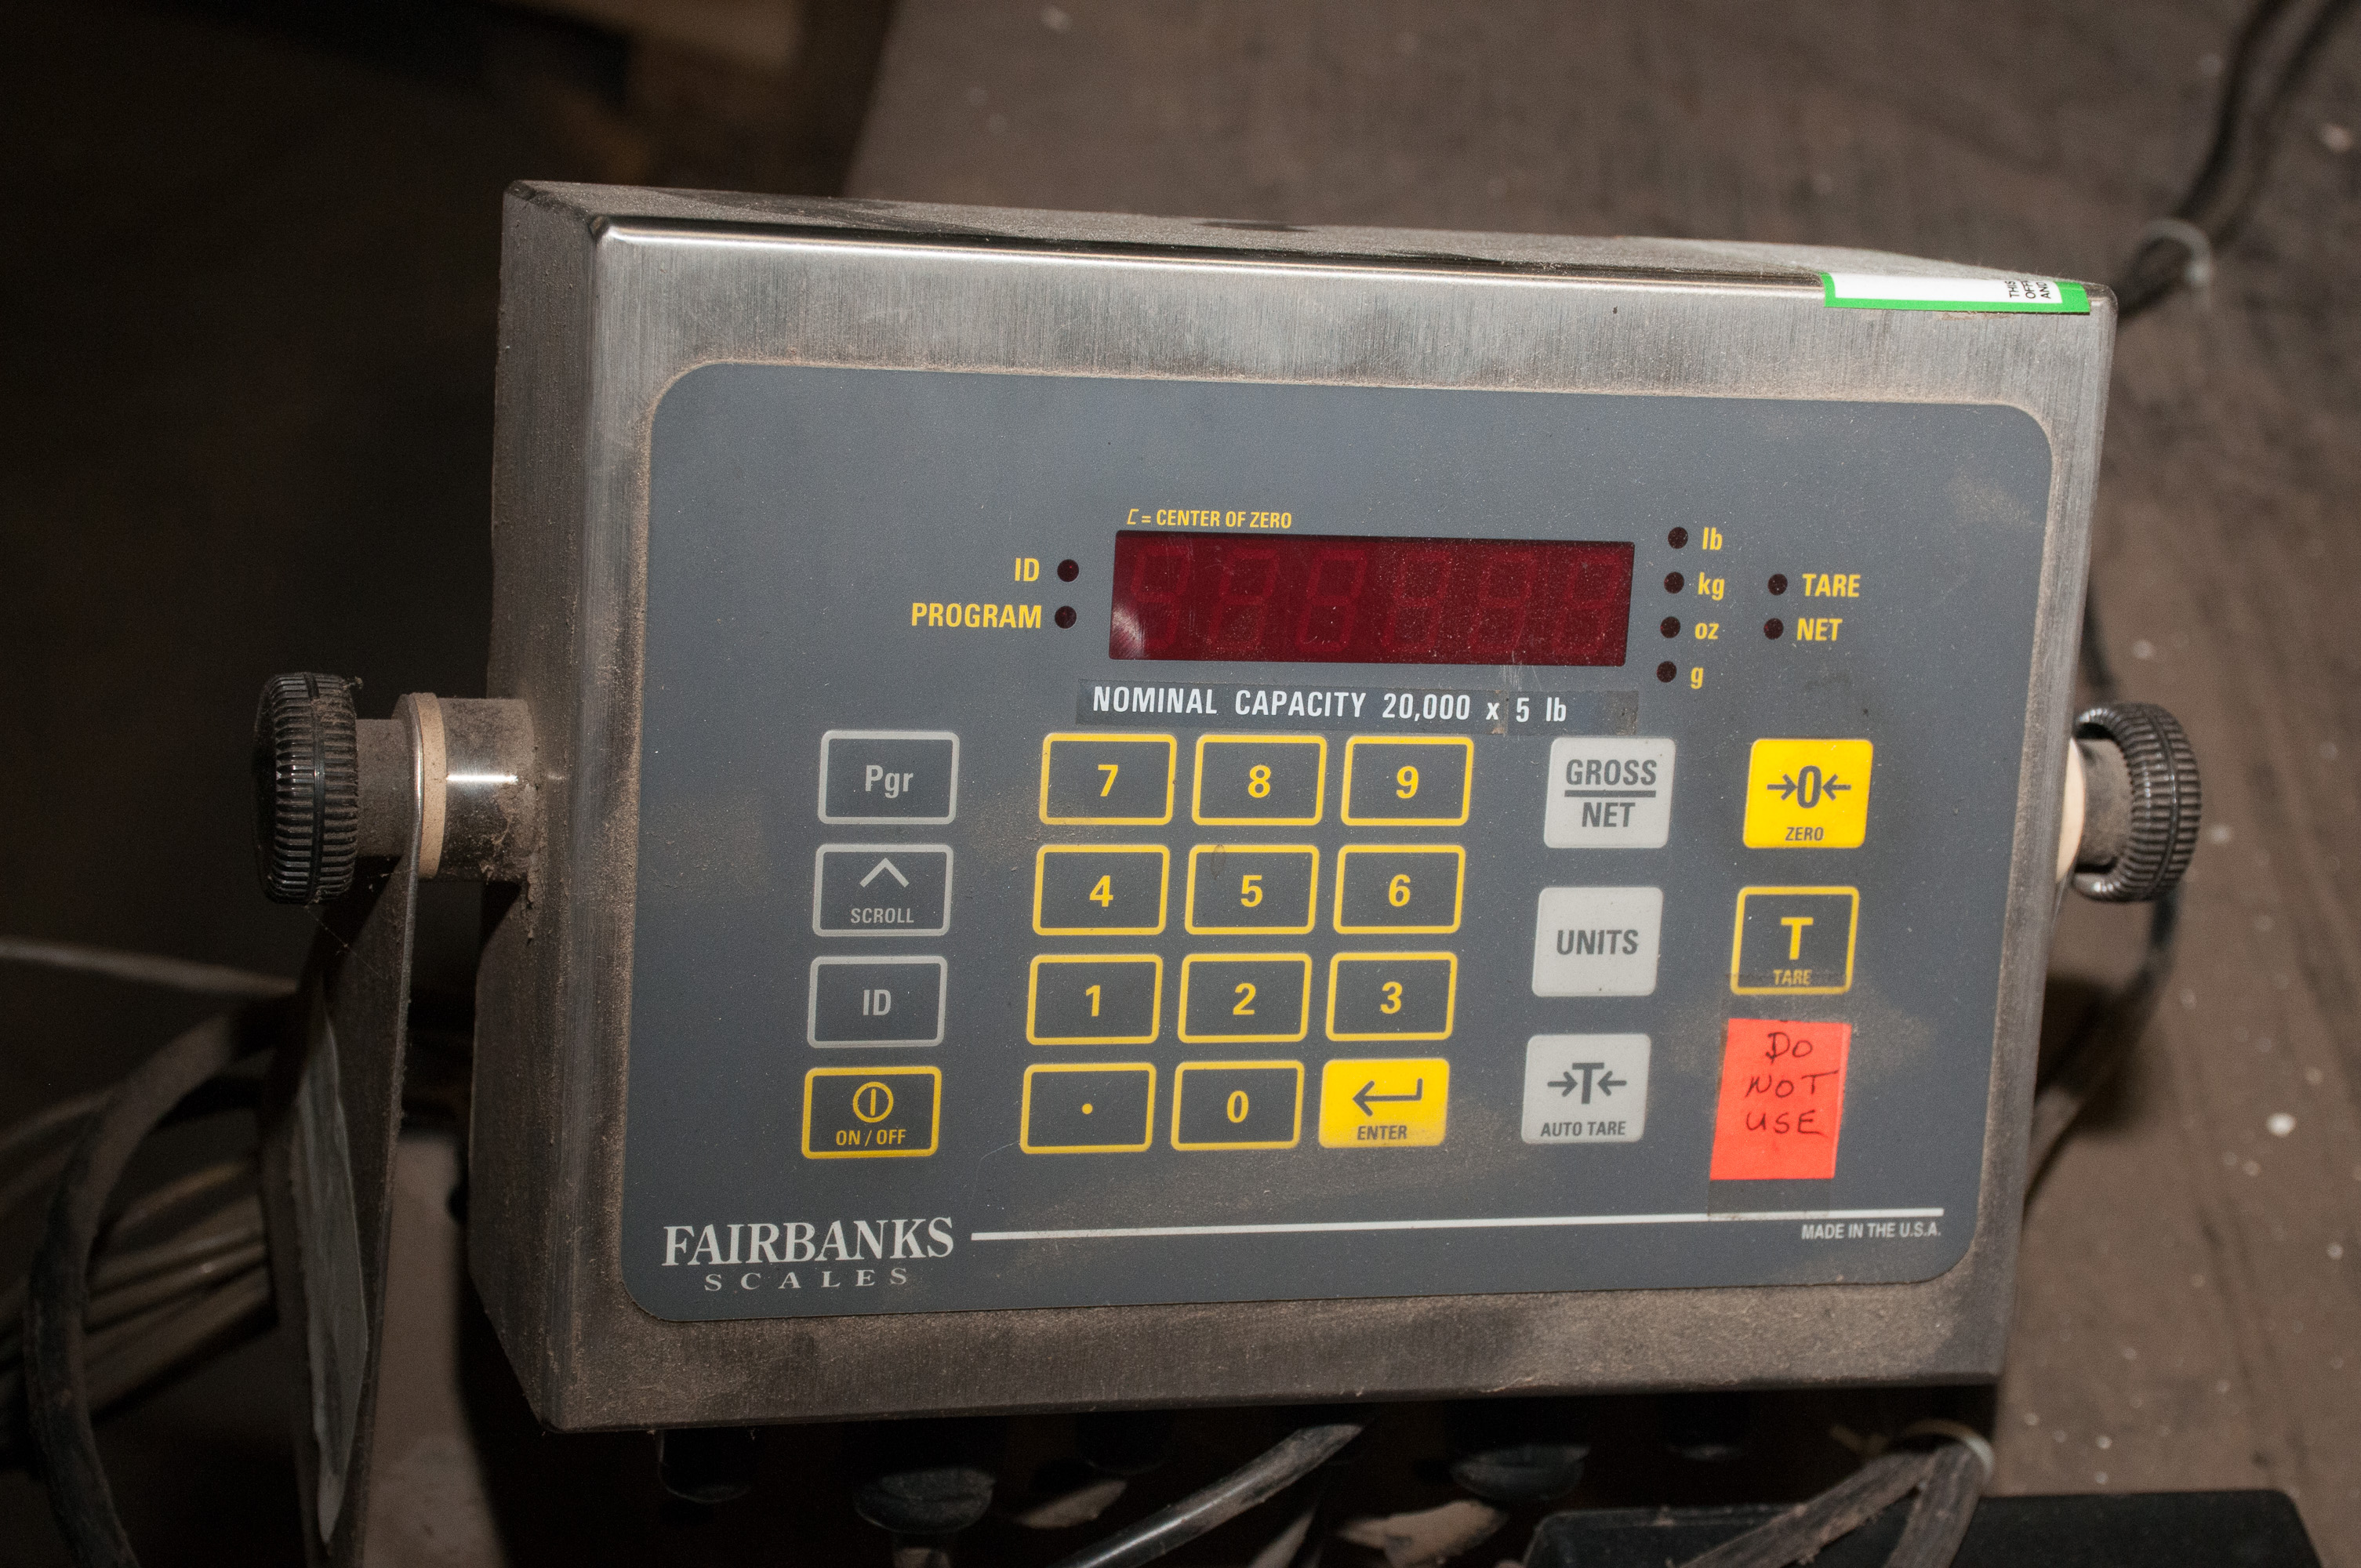 """Scale Table 82 1/2"""" X 107 1/2"""" w/ Fairbanks Readout and Epson Printer, 10,000 lb. Cap. - Image 2 of 5"""